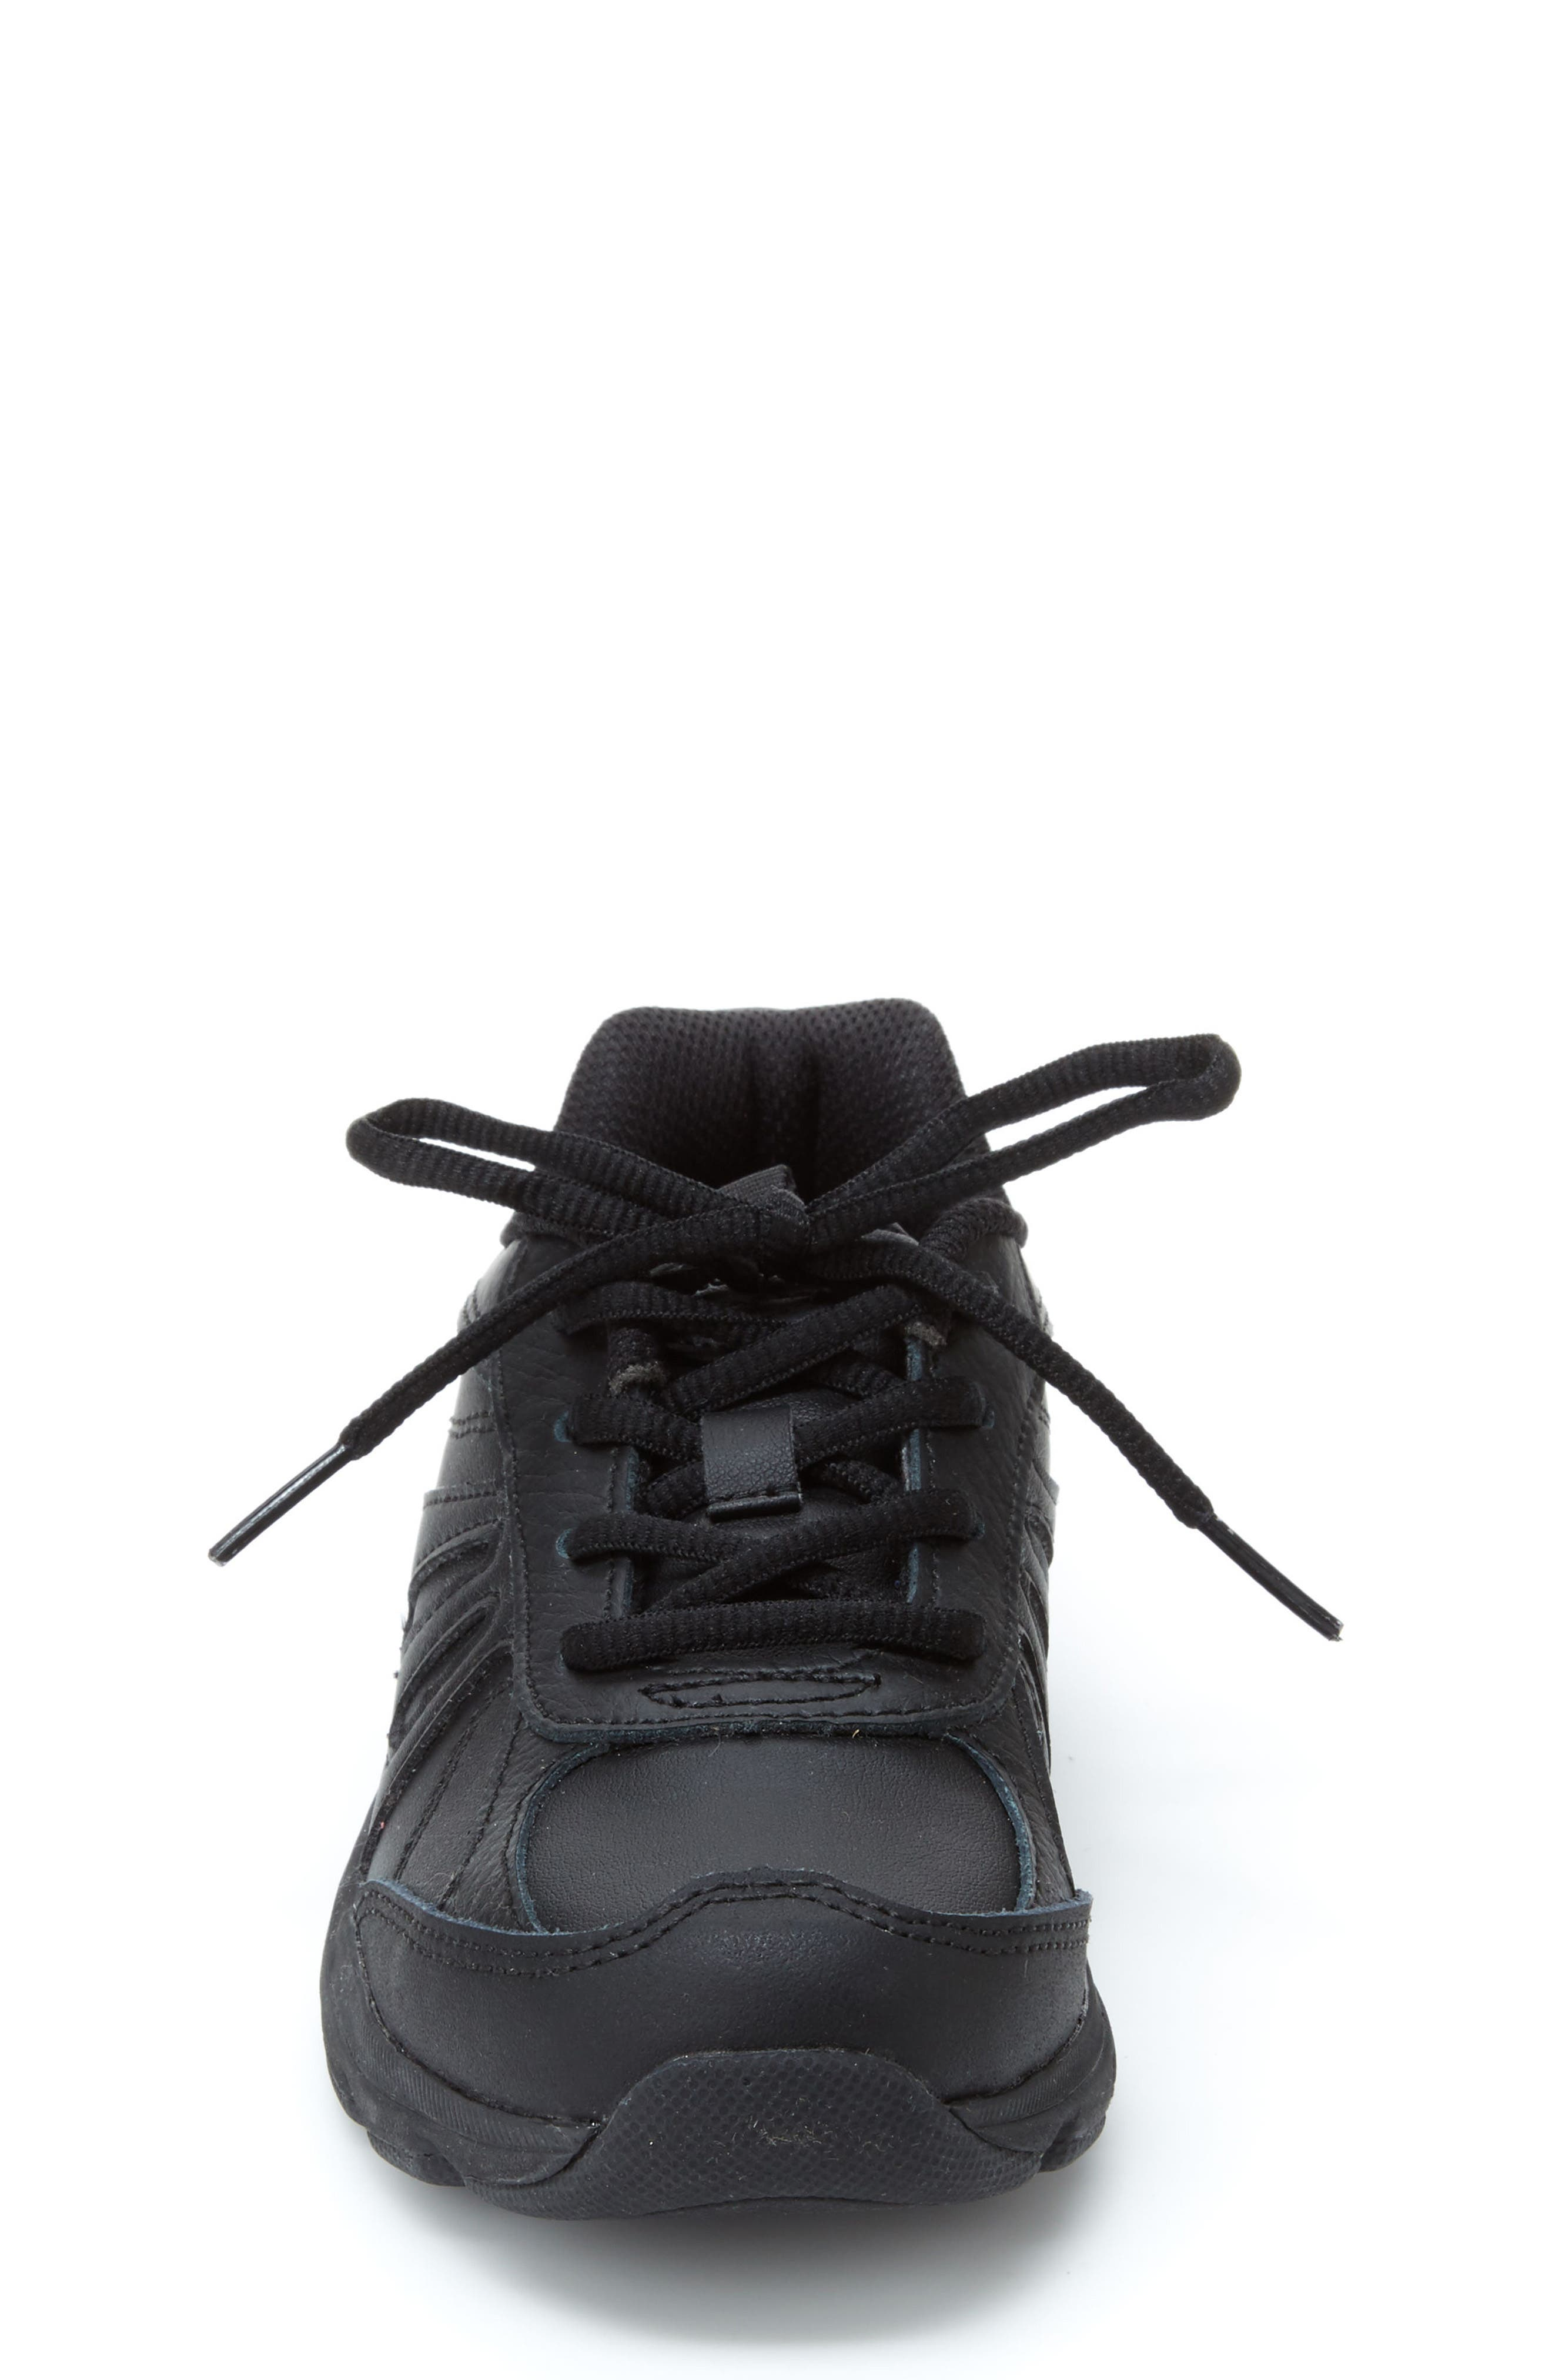 Cooper 2.0 Sneaker,                             Alternate thumbnail 3, color,                             BLACK